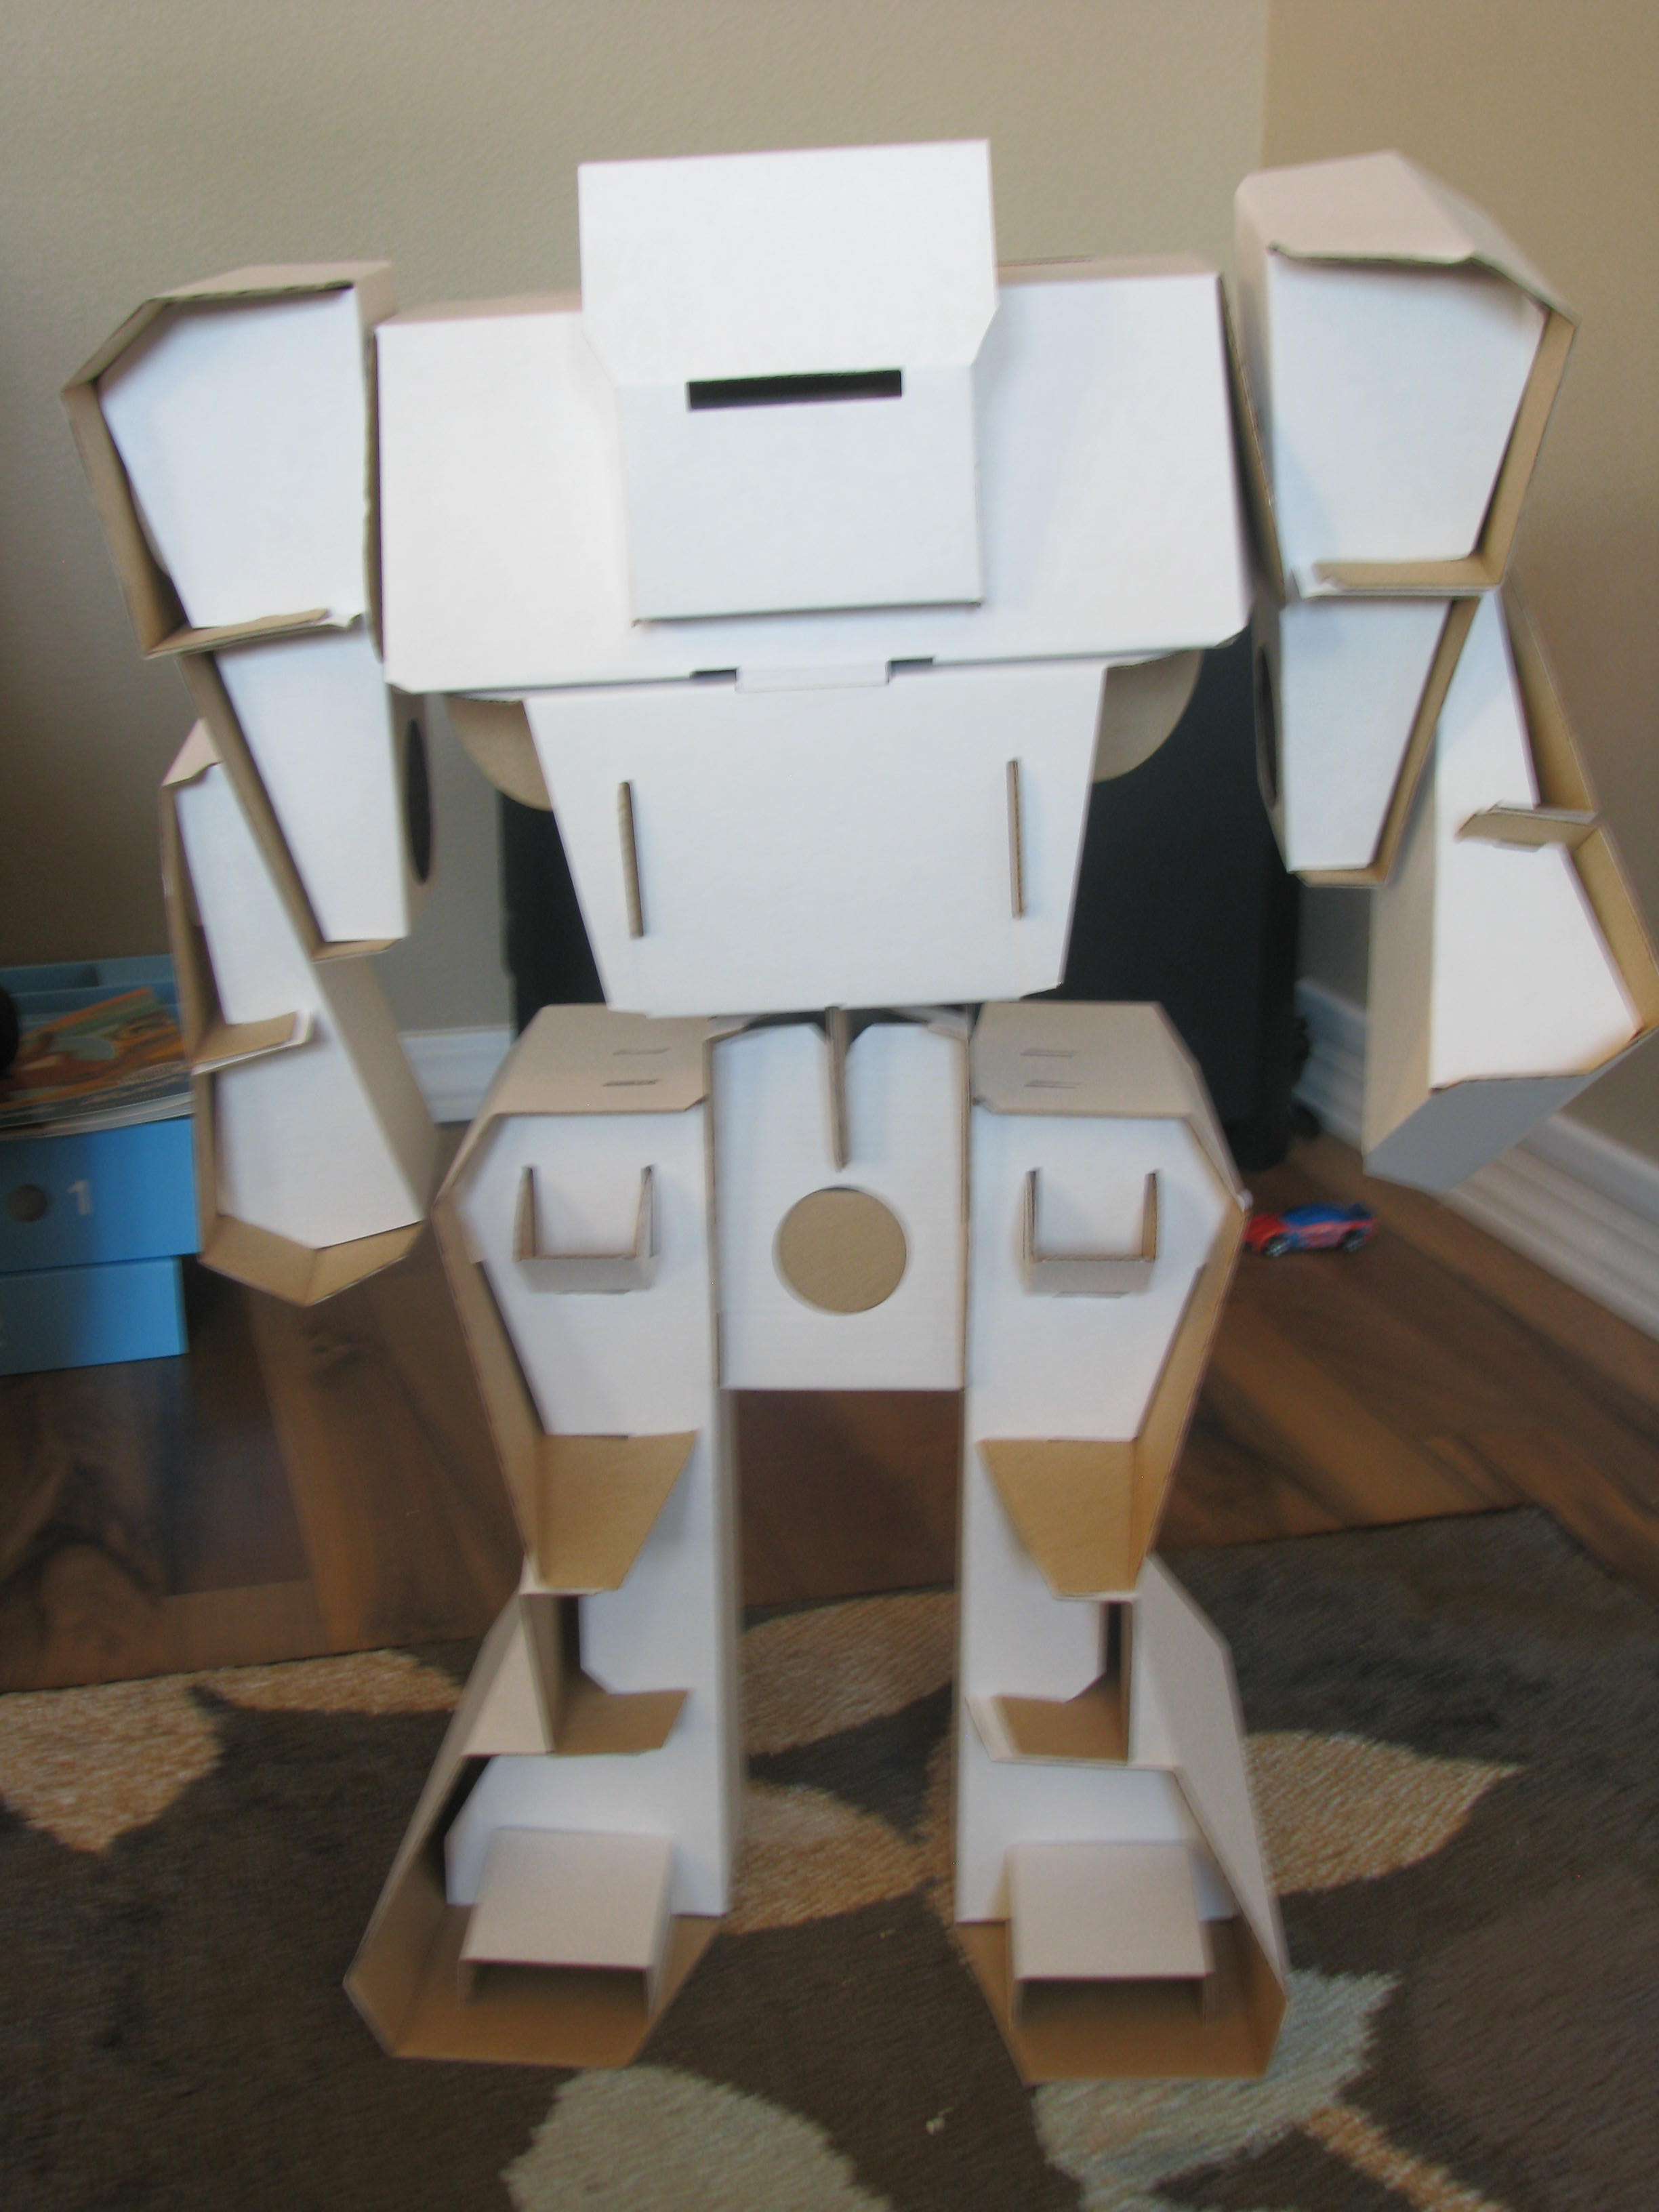 Do it yourself cardboard robot kit calafont calabot review once solutioingenieria Gallery